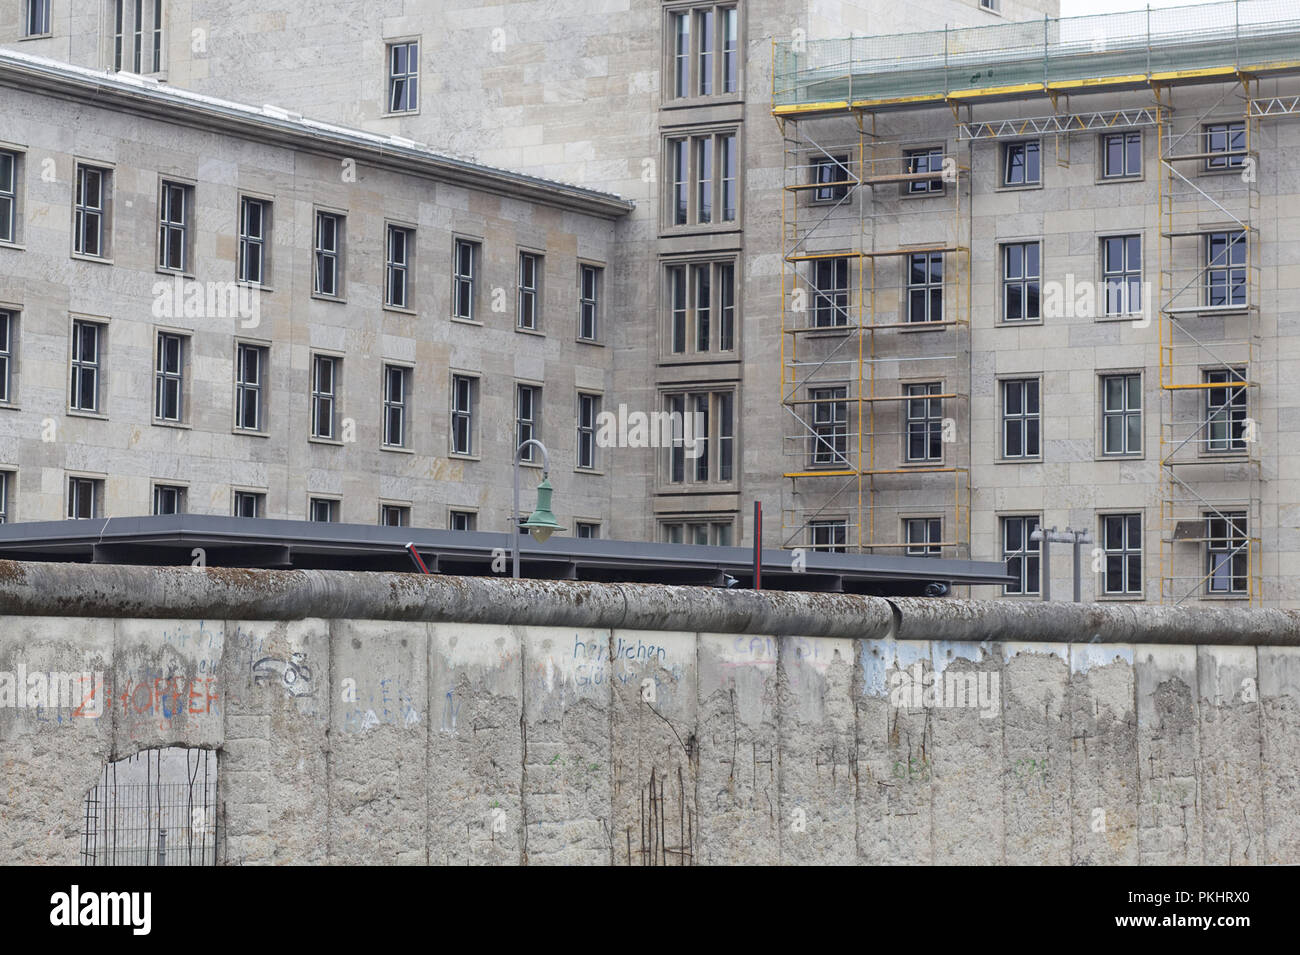 Death Strip wall barrier separating Berlin into east and west - Stock Image